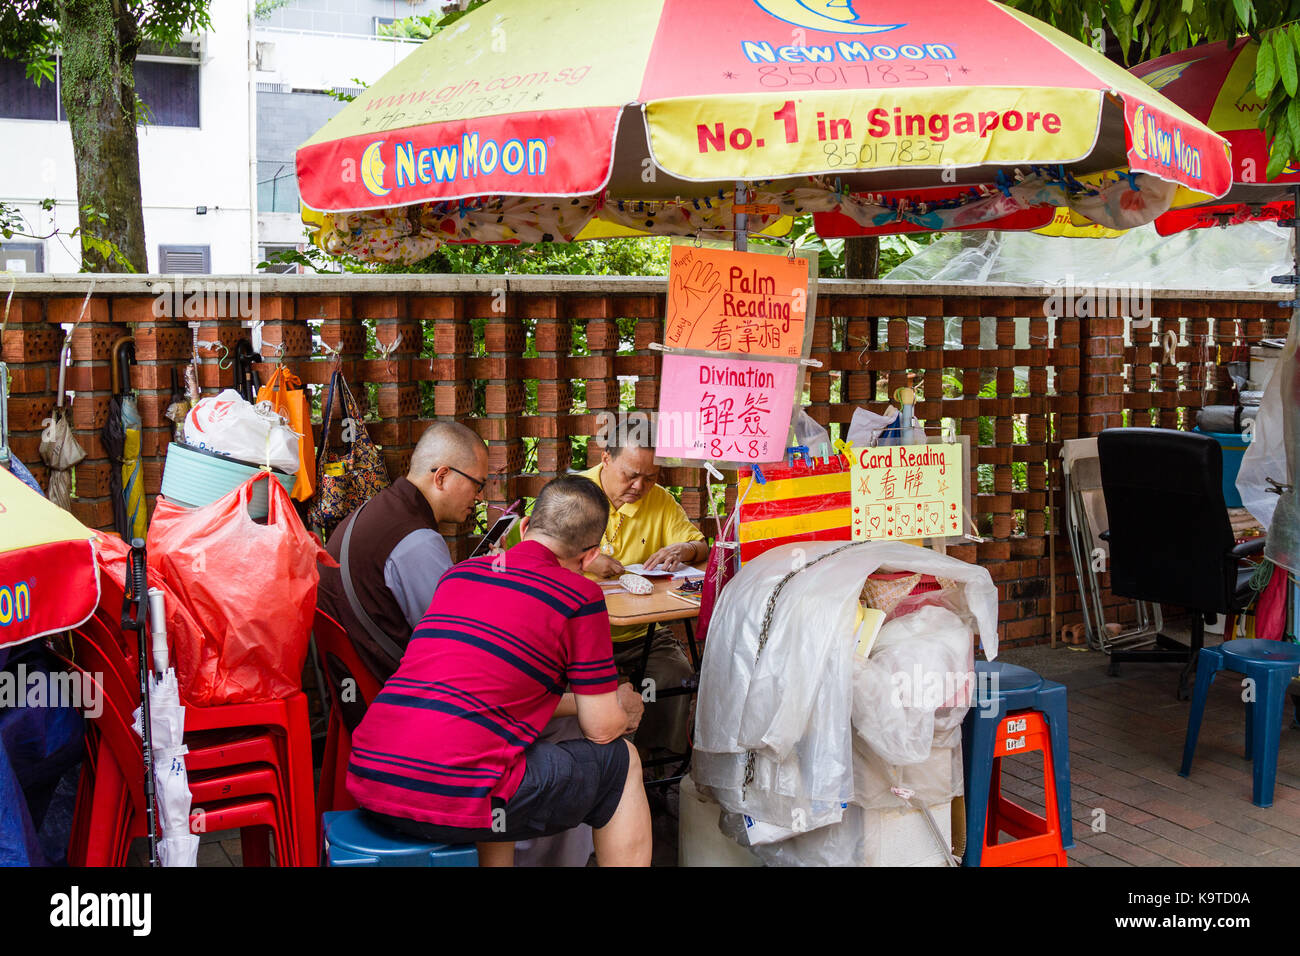 SINGAPORE - SEPTEMBER 7, 2017: A fortune teller practices divination for devotees outside the Kwan Im Thong Hood Stock Photo